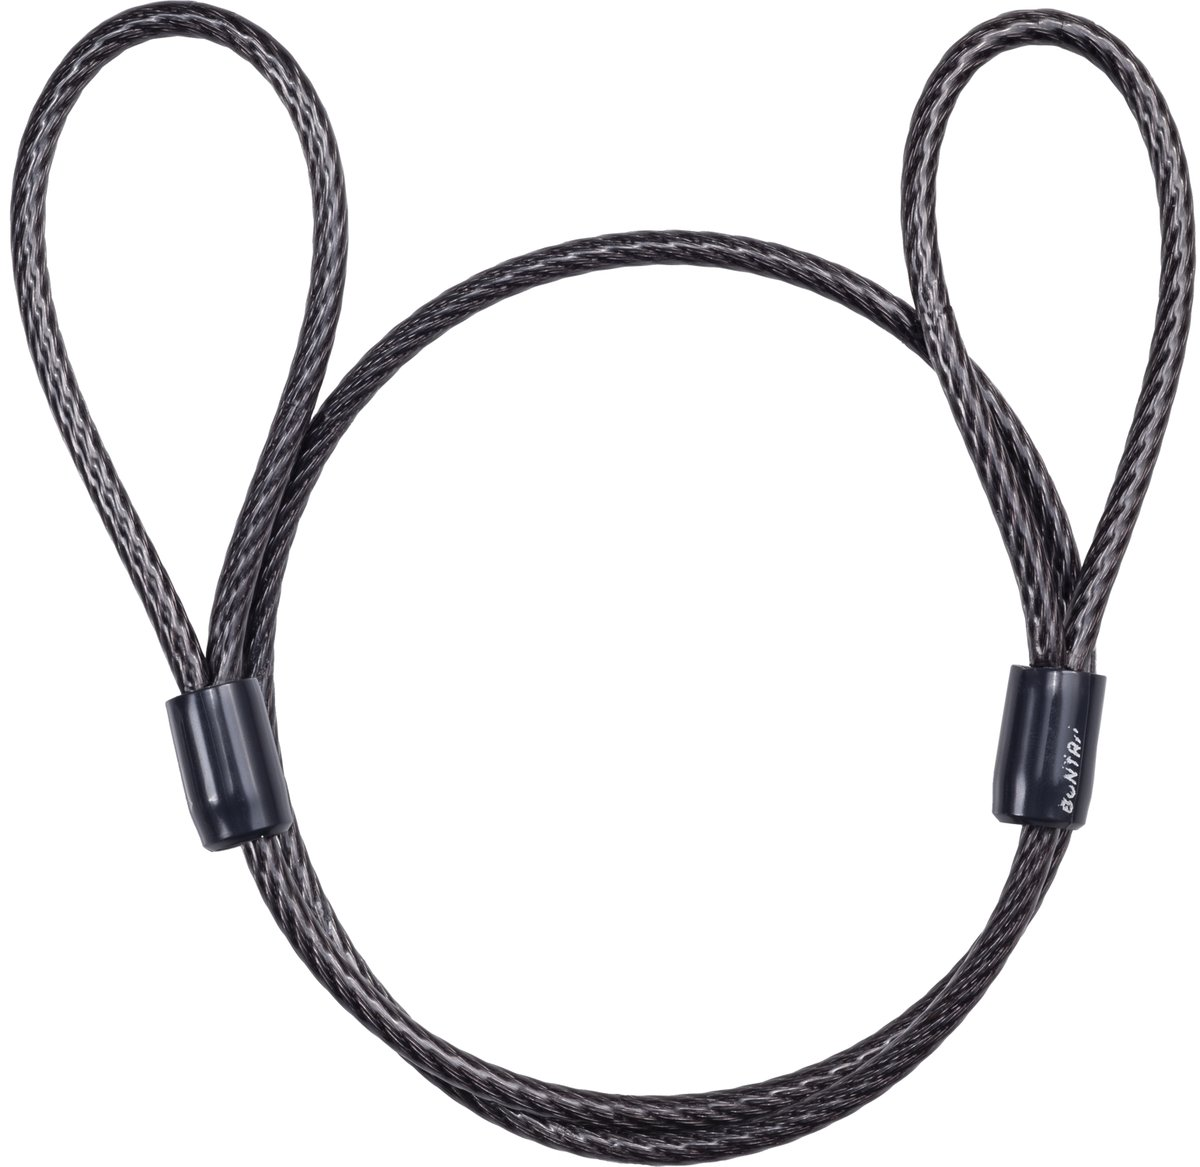 Bike Cable Lock >> Seat Cable Lock